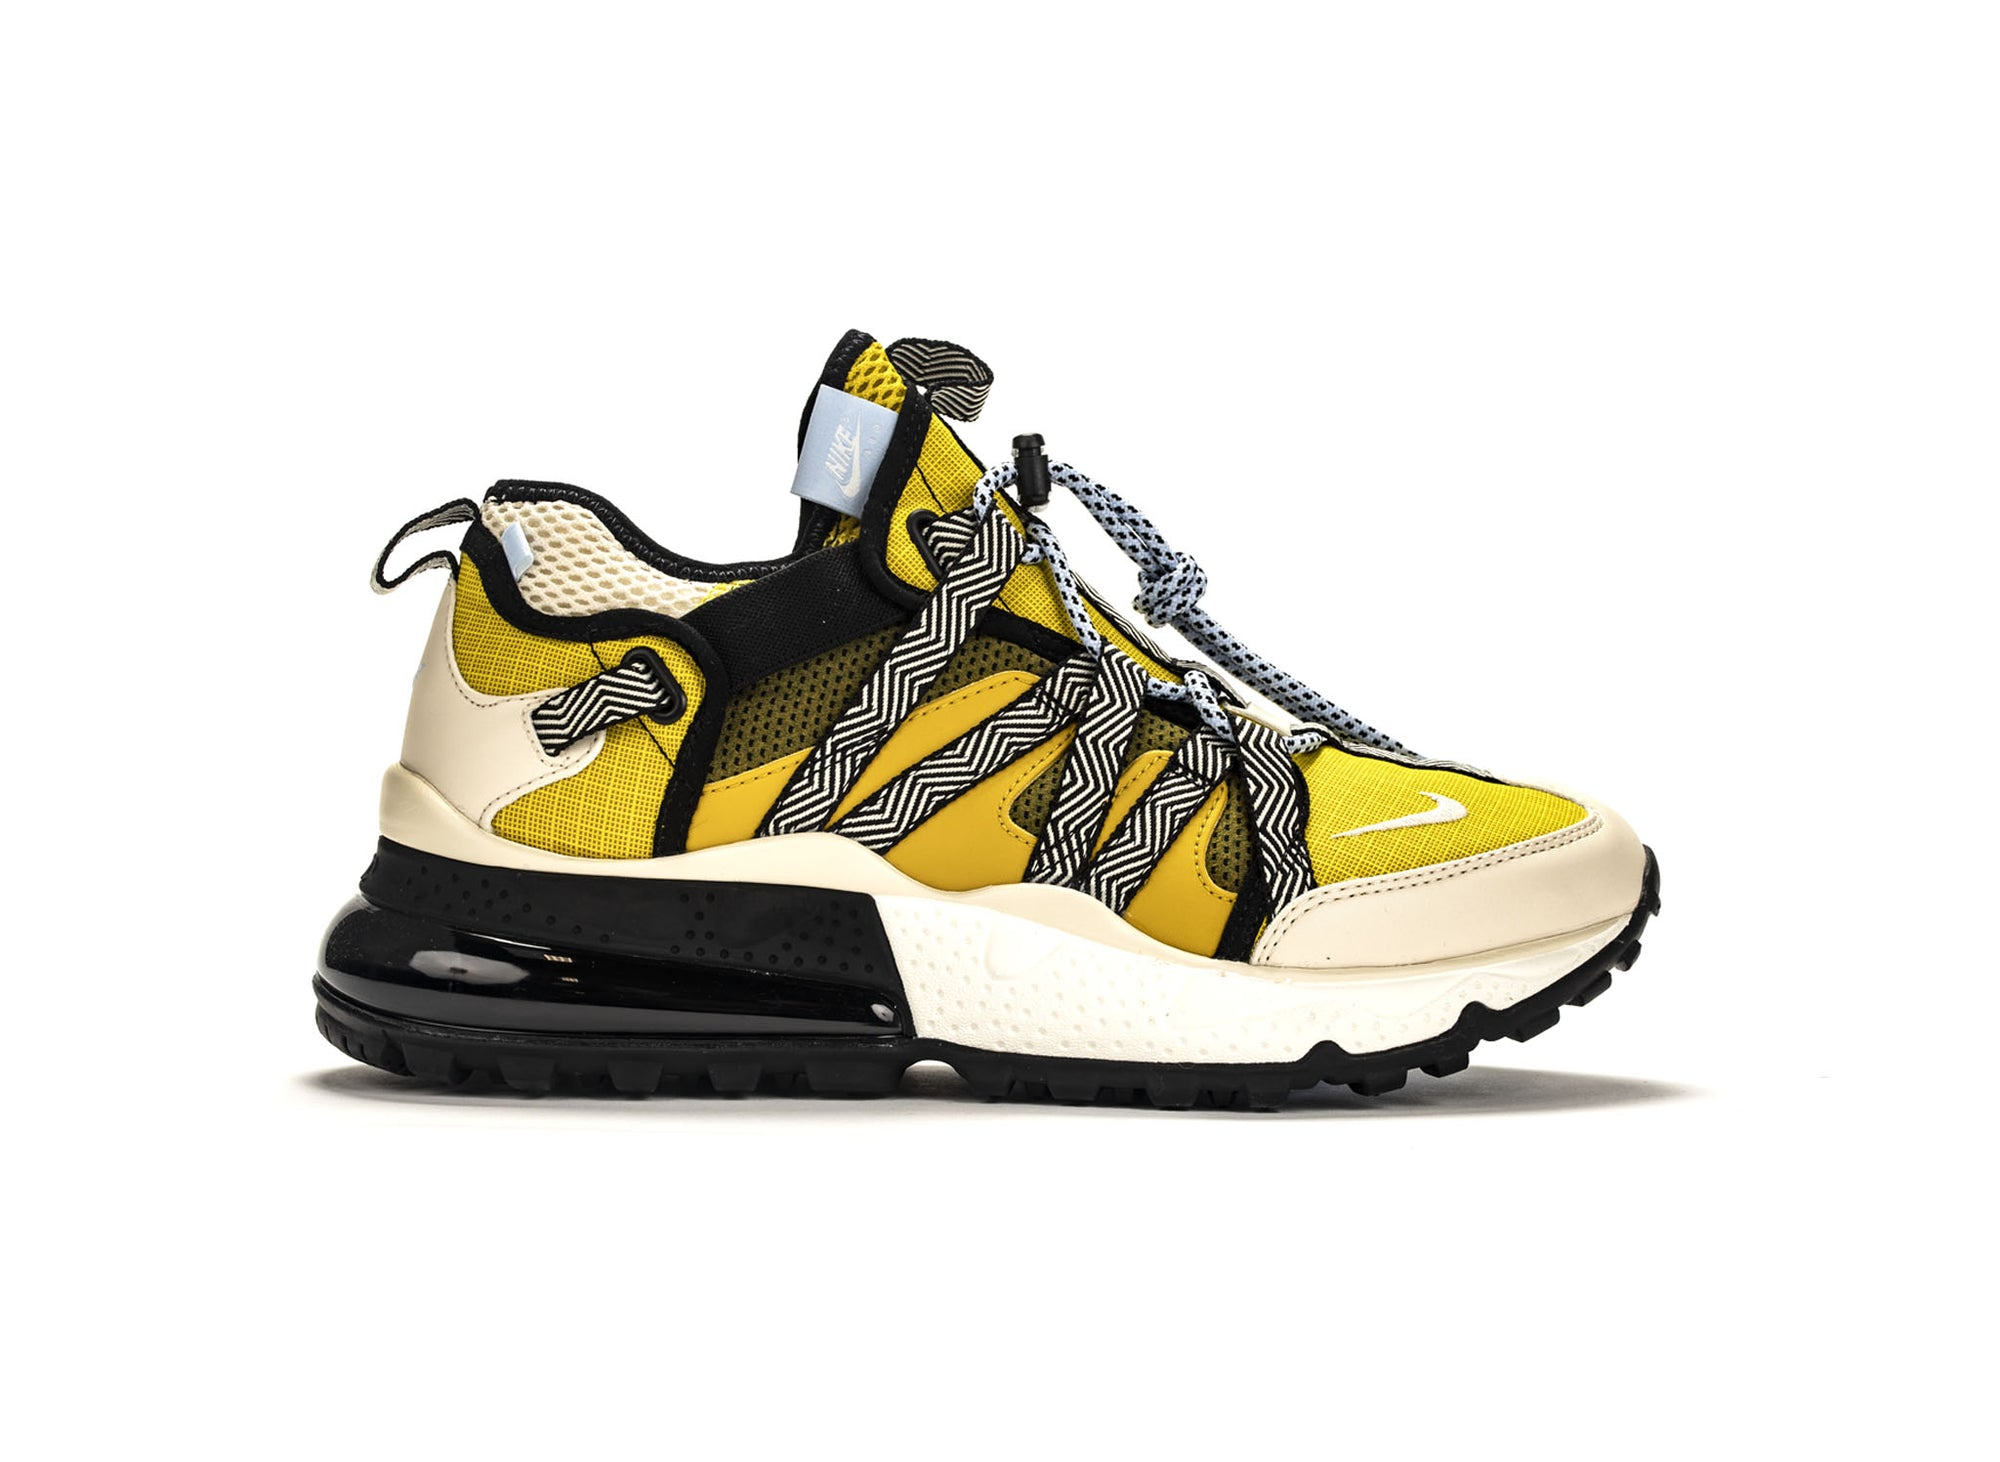 quality design 7cfe9 1529f NIKE AIR MAX 270 BOWFIN